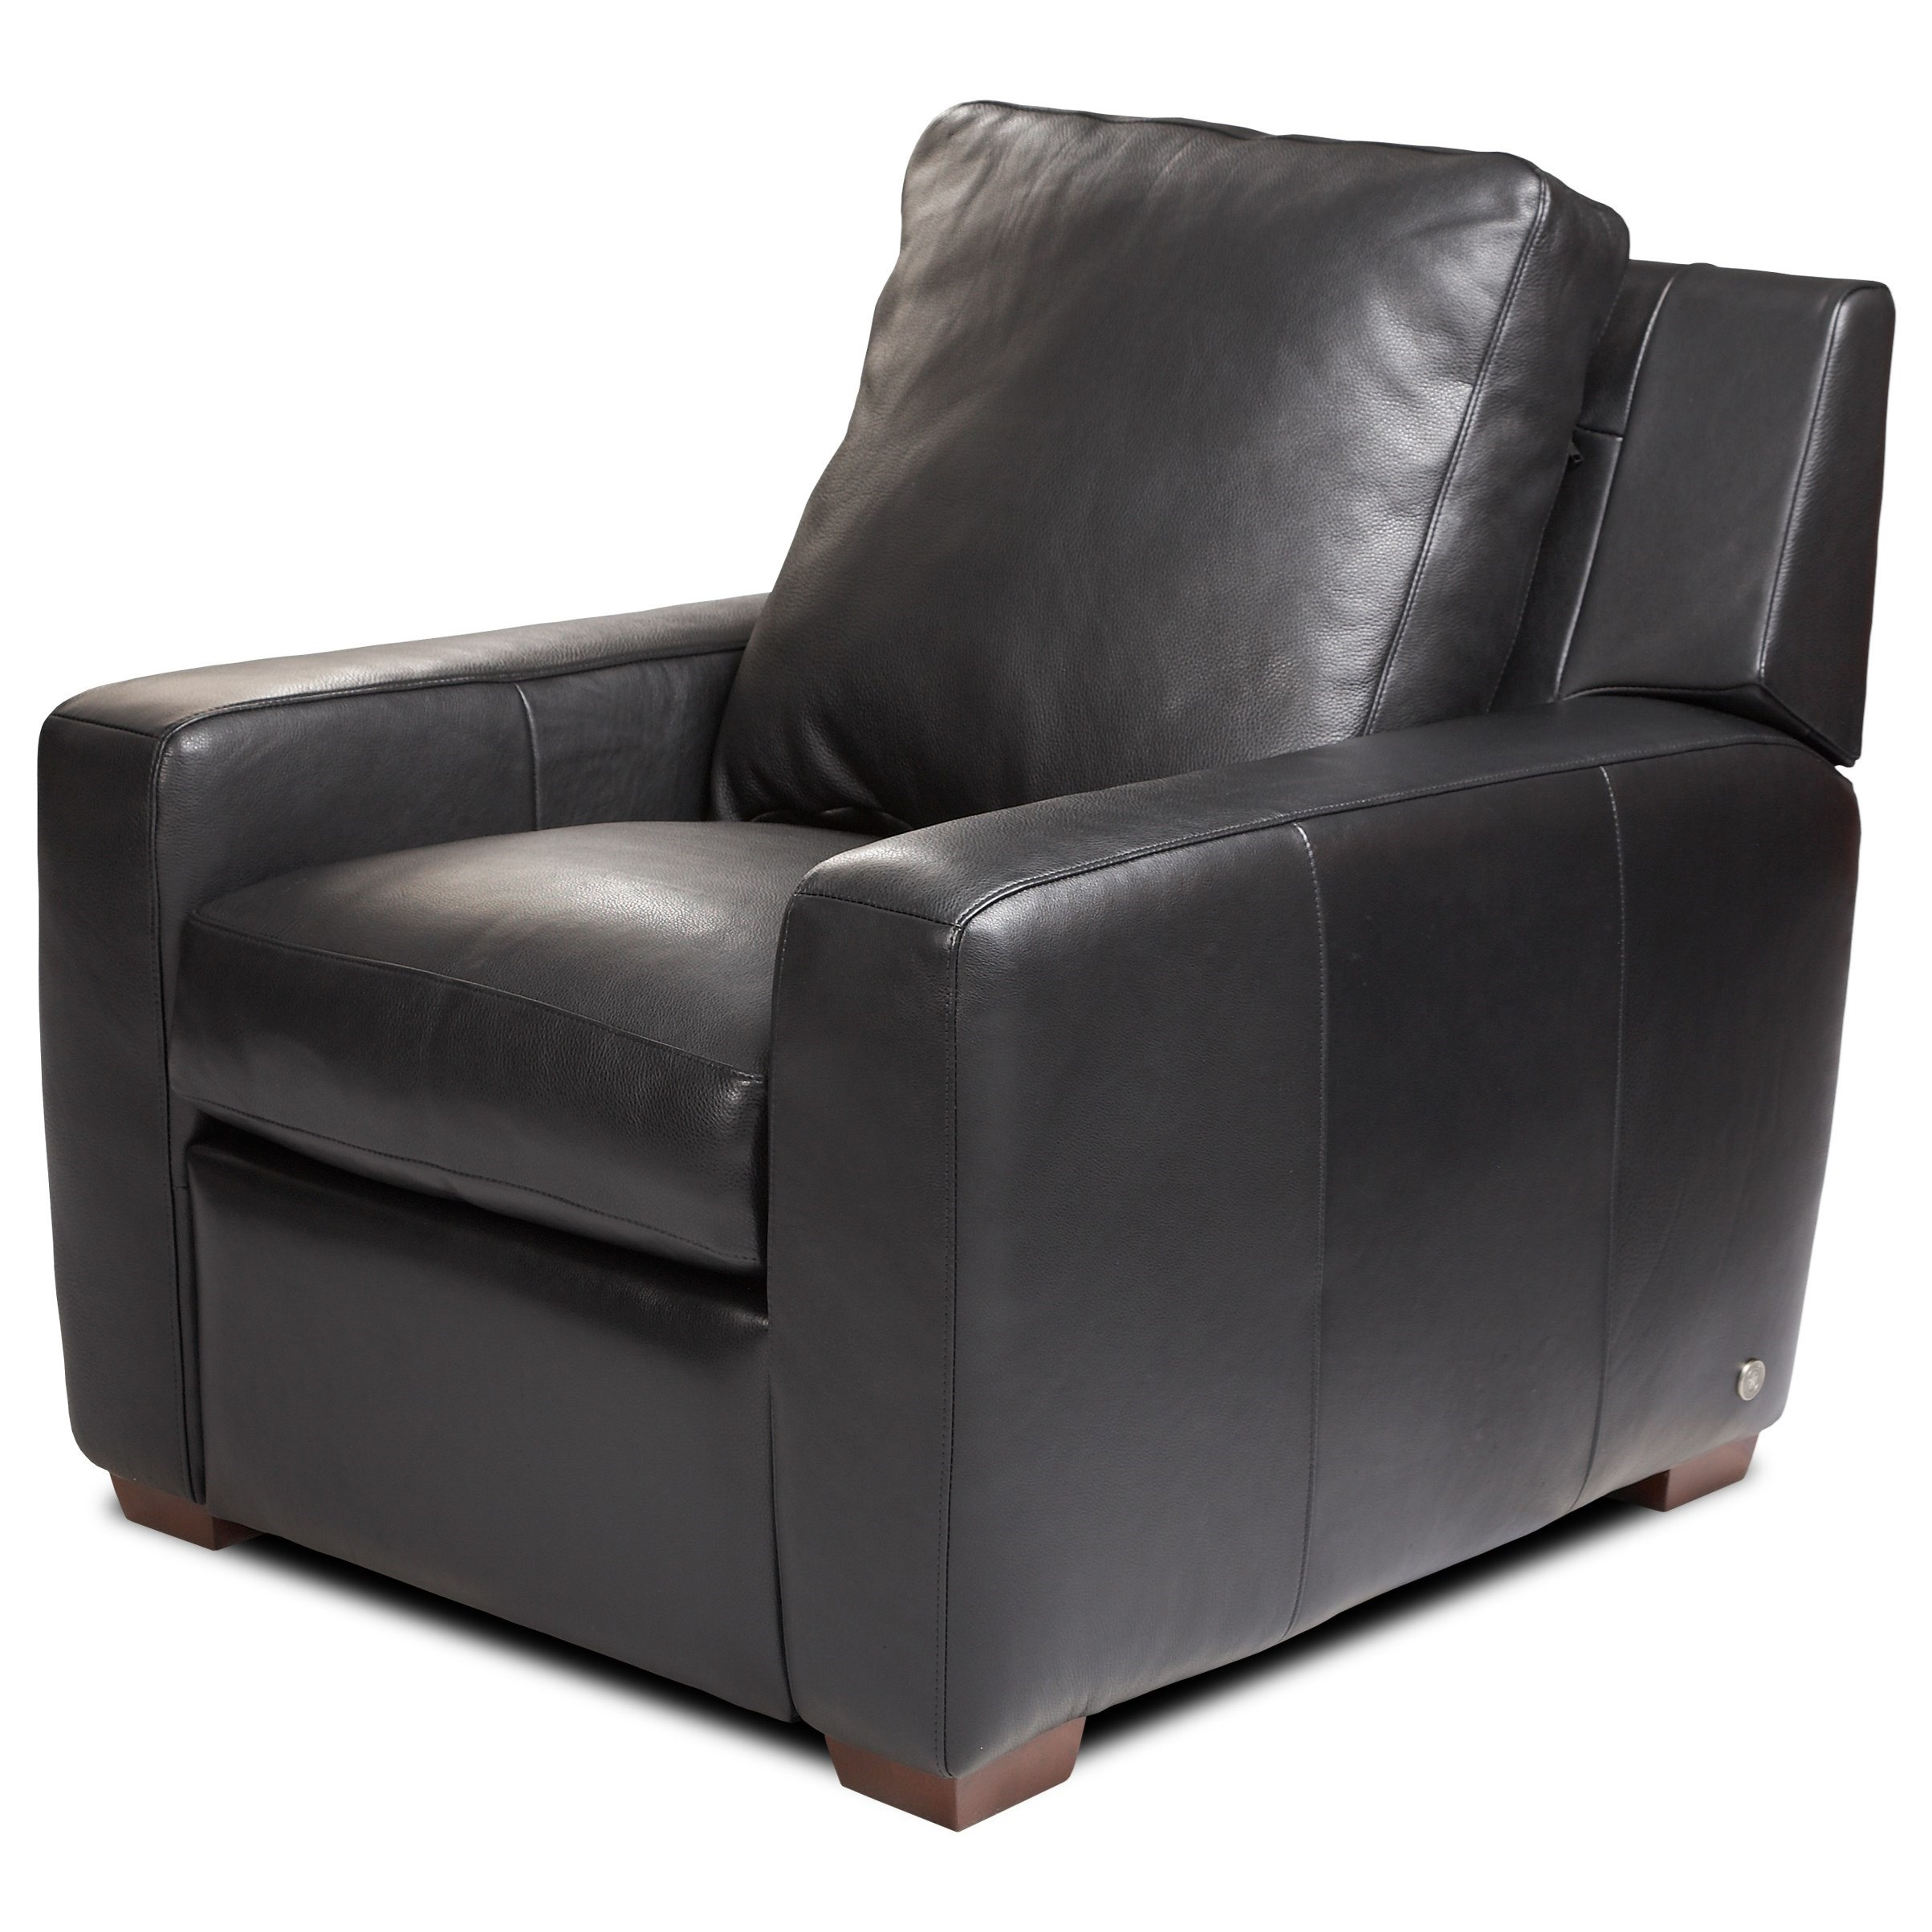 Lisben High Leg Recliner by American Leather at Sprintz Furniture